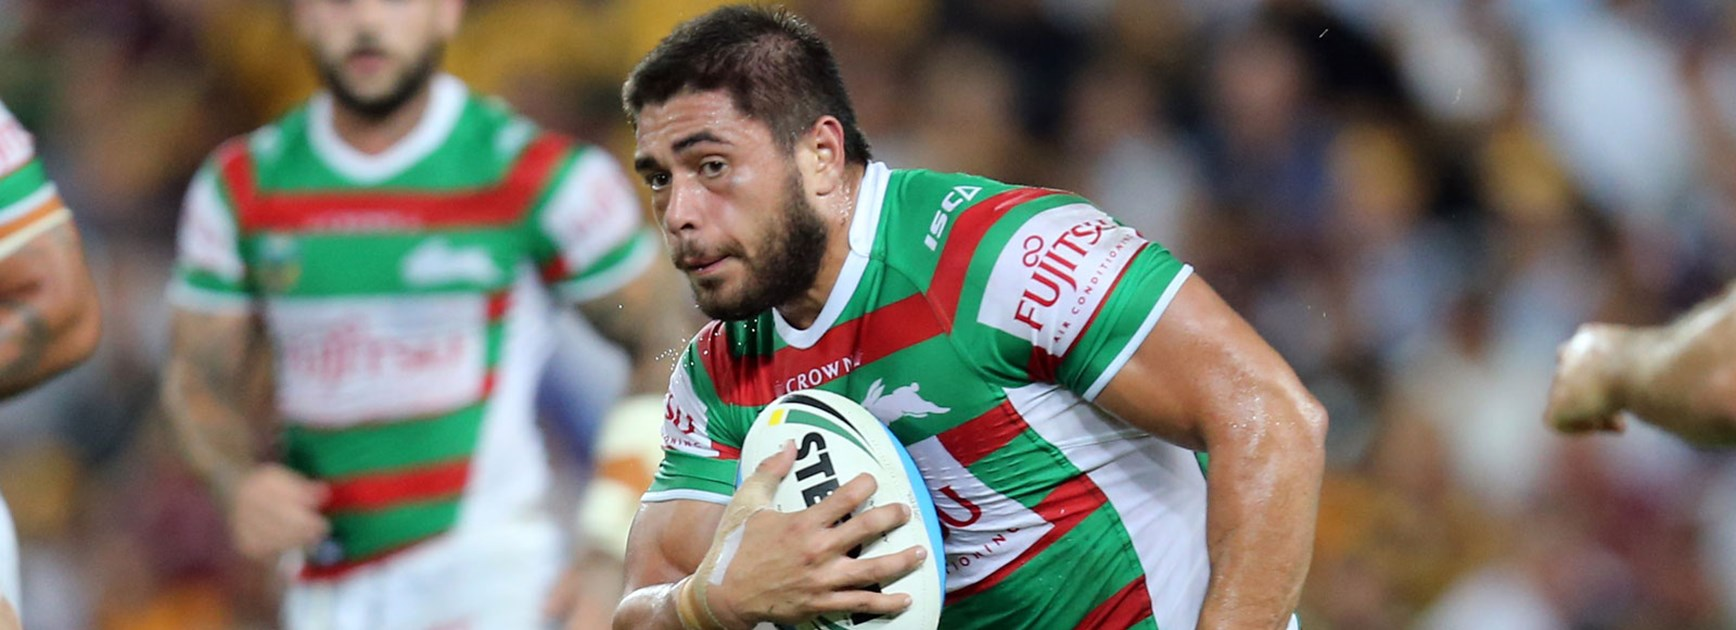 Rabbitohs forward Chris Grevsmuhl won the Auckland Nines, Charity Shield, NRL All Stars and World Club Challenge all before making his NRL debut.